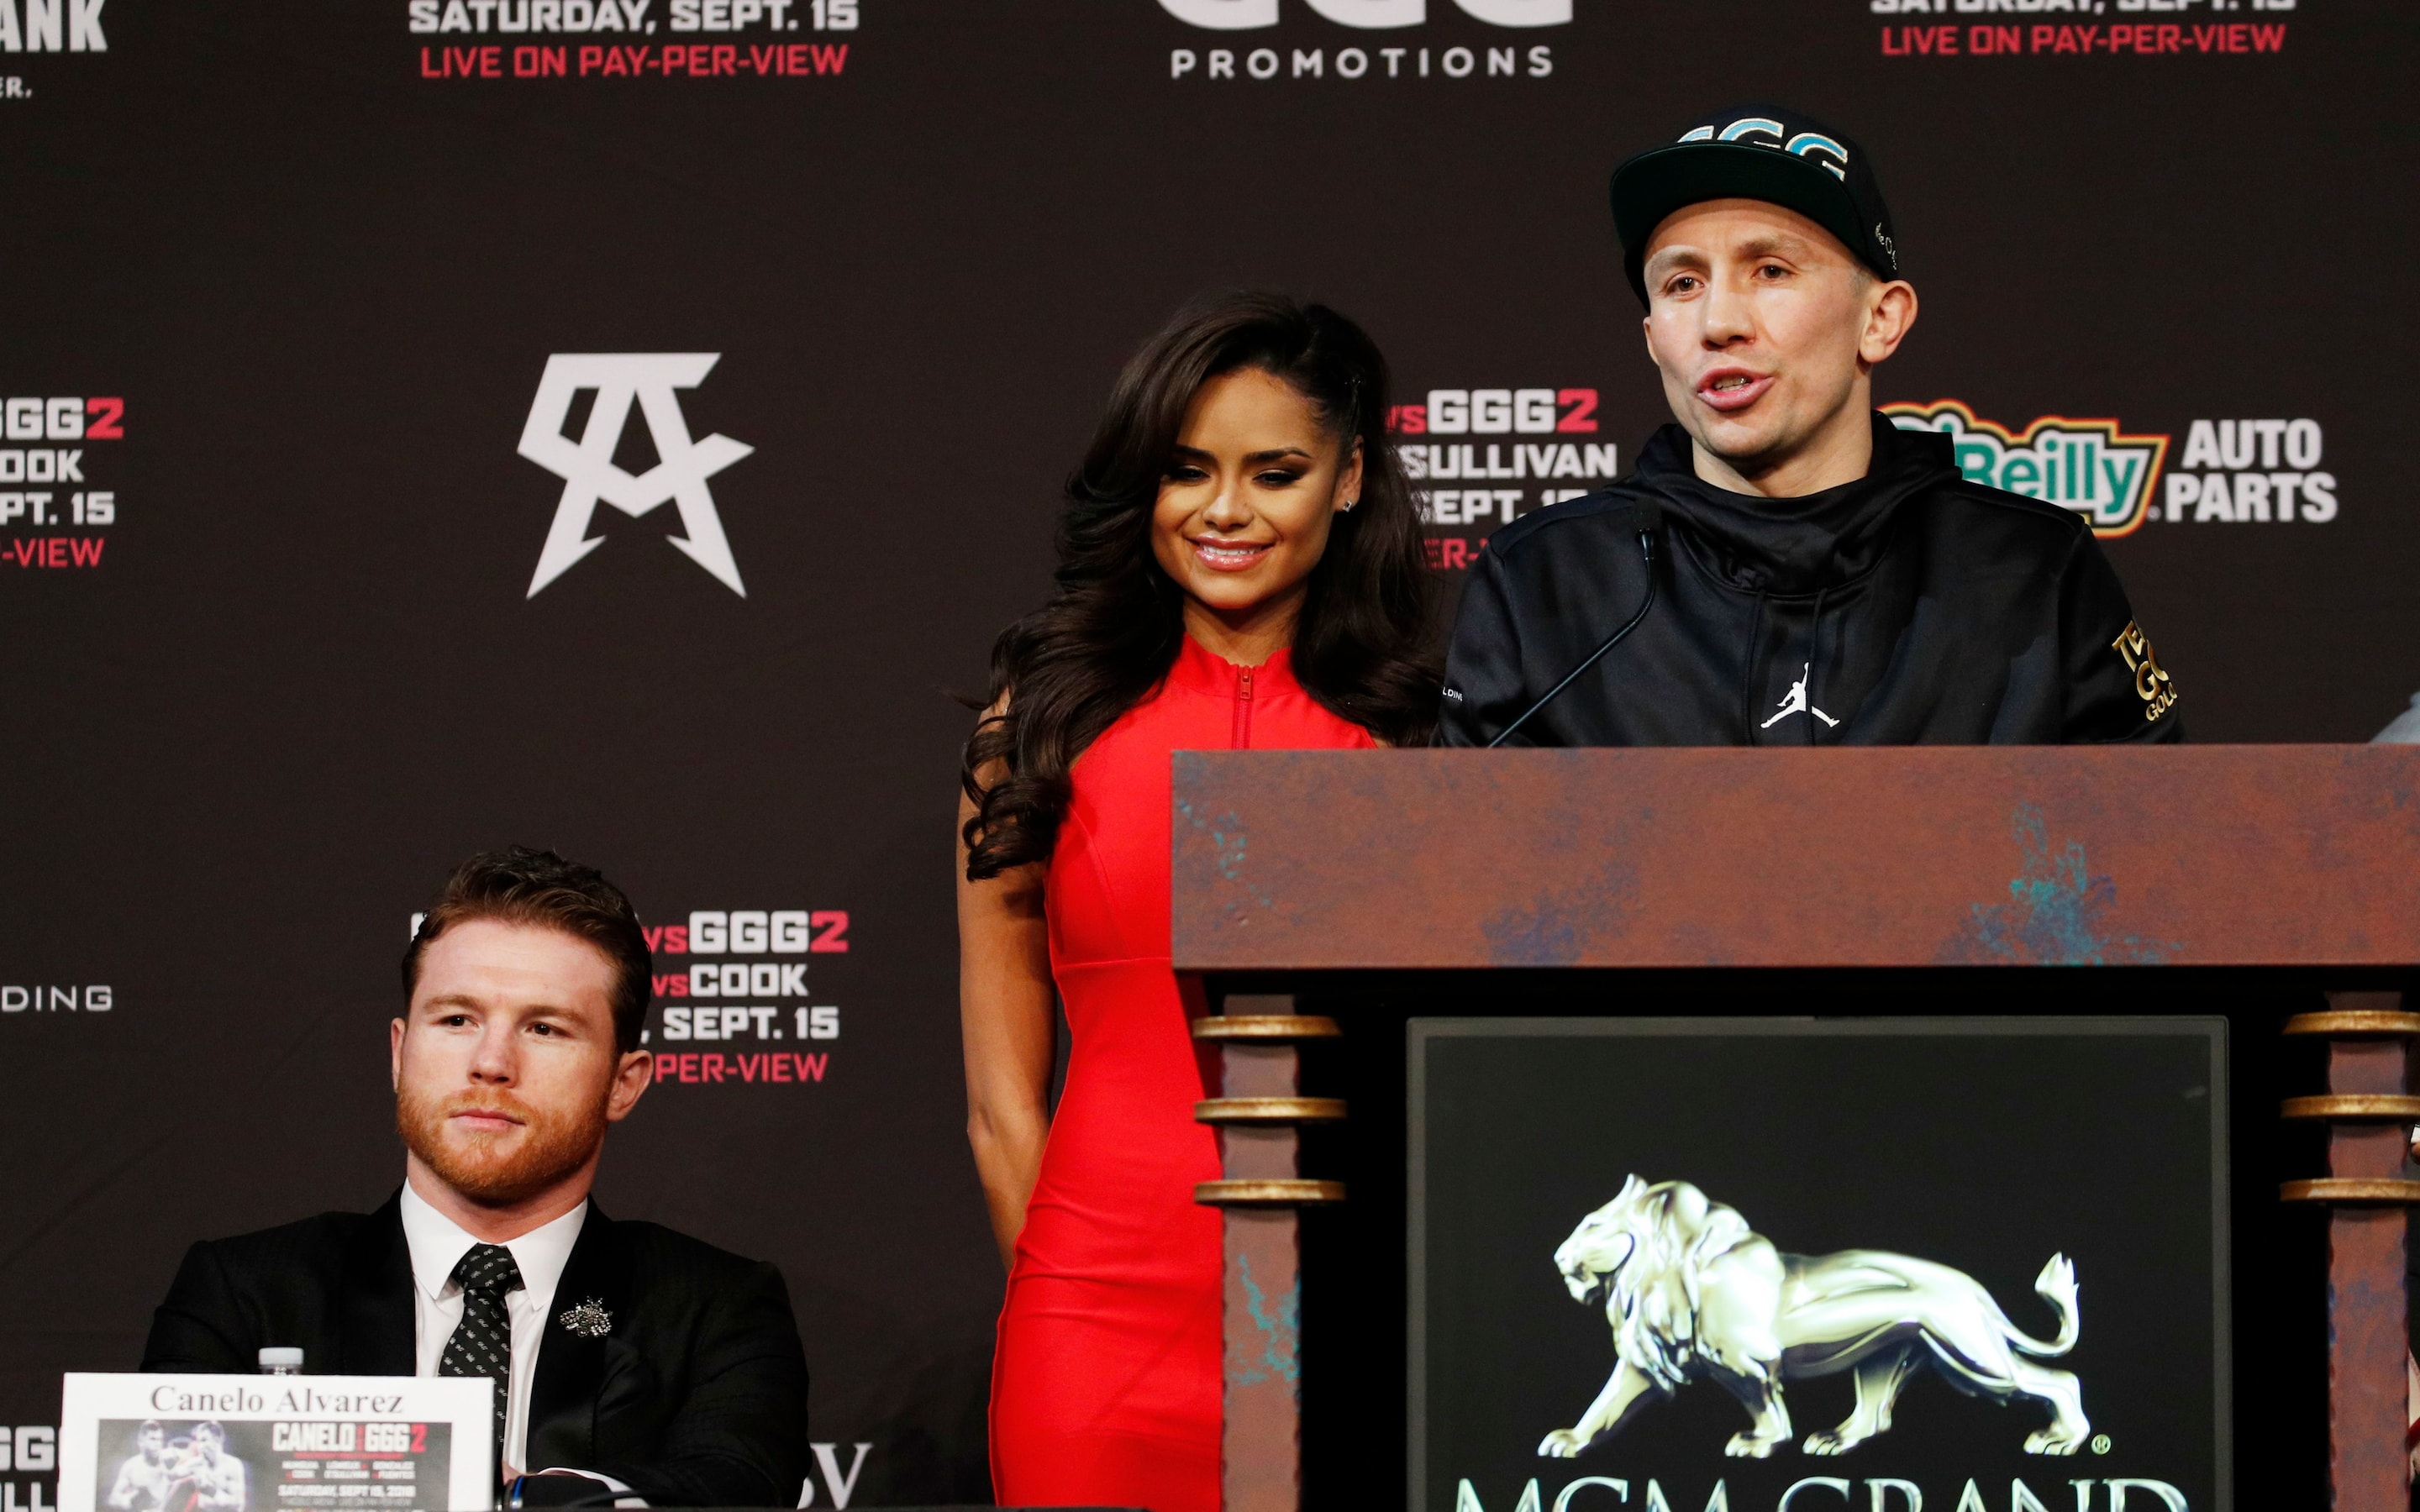 How to watch GGG vs Canelo 2 fight tomorrow: live stream ...